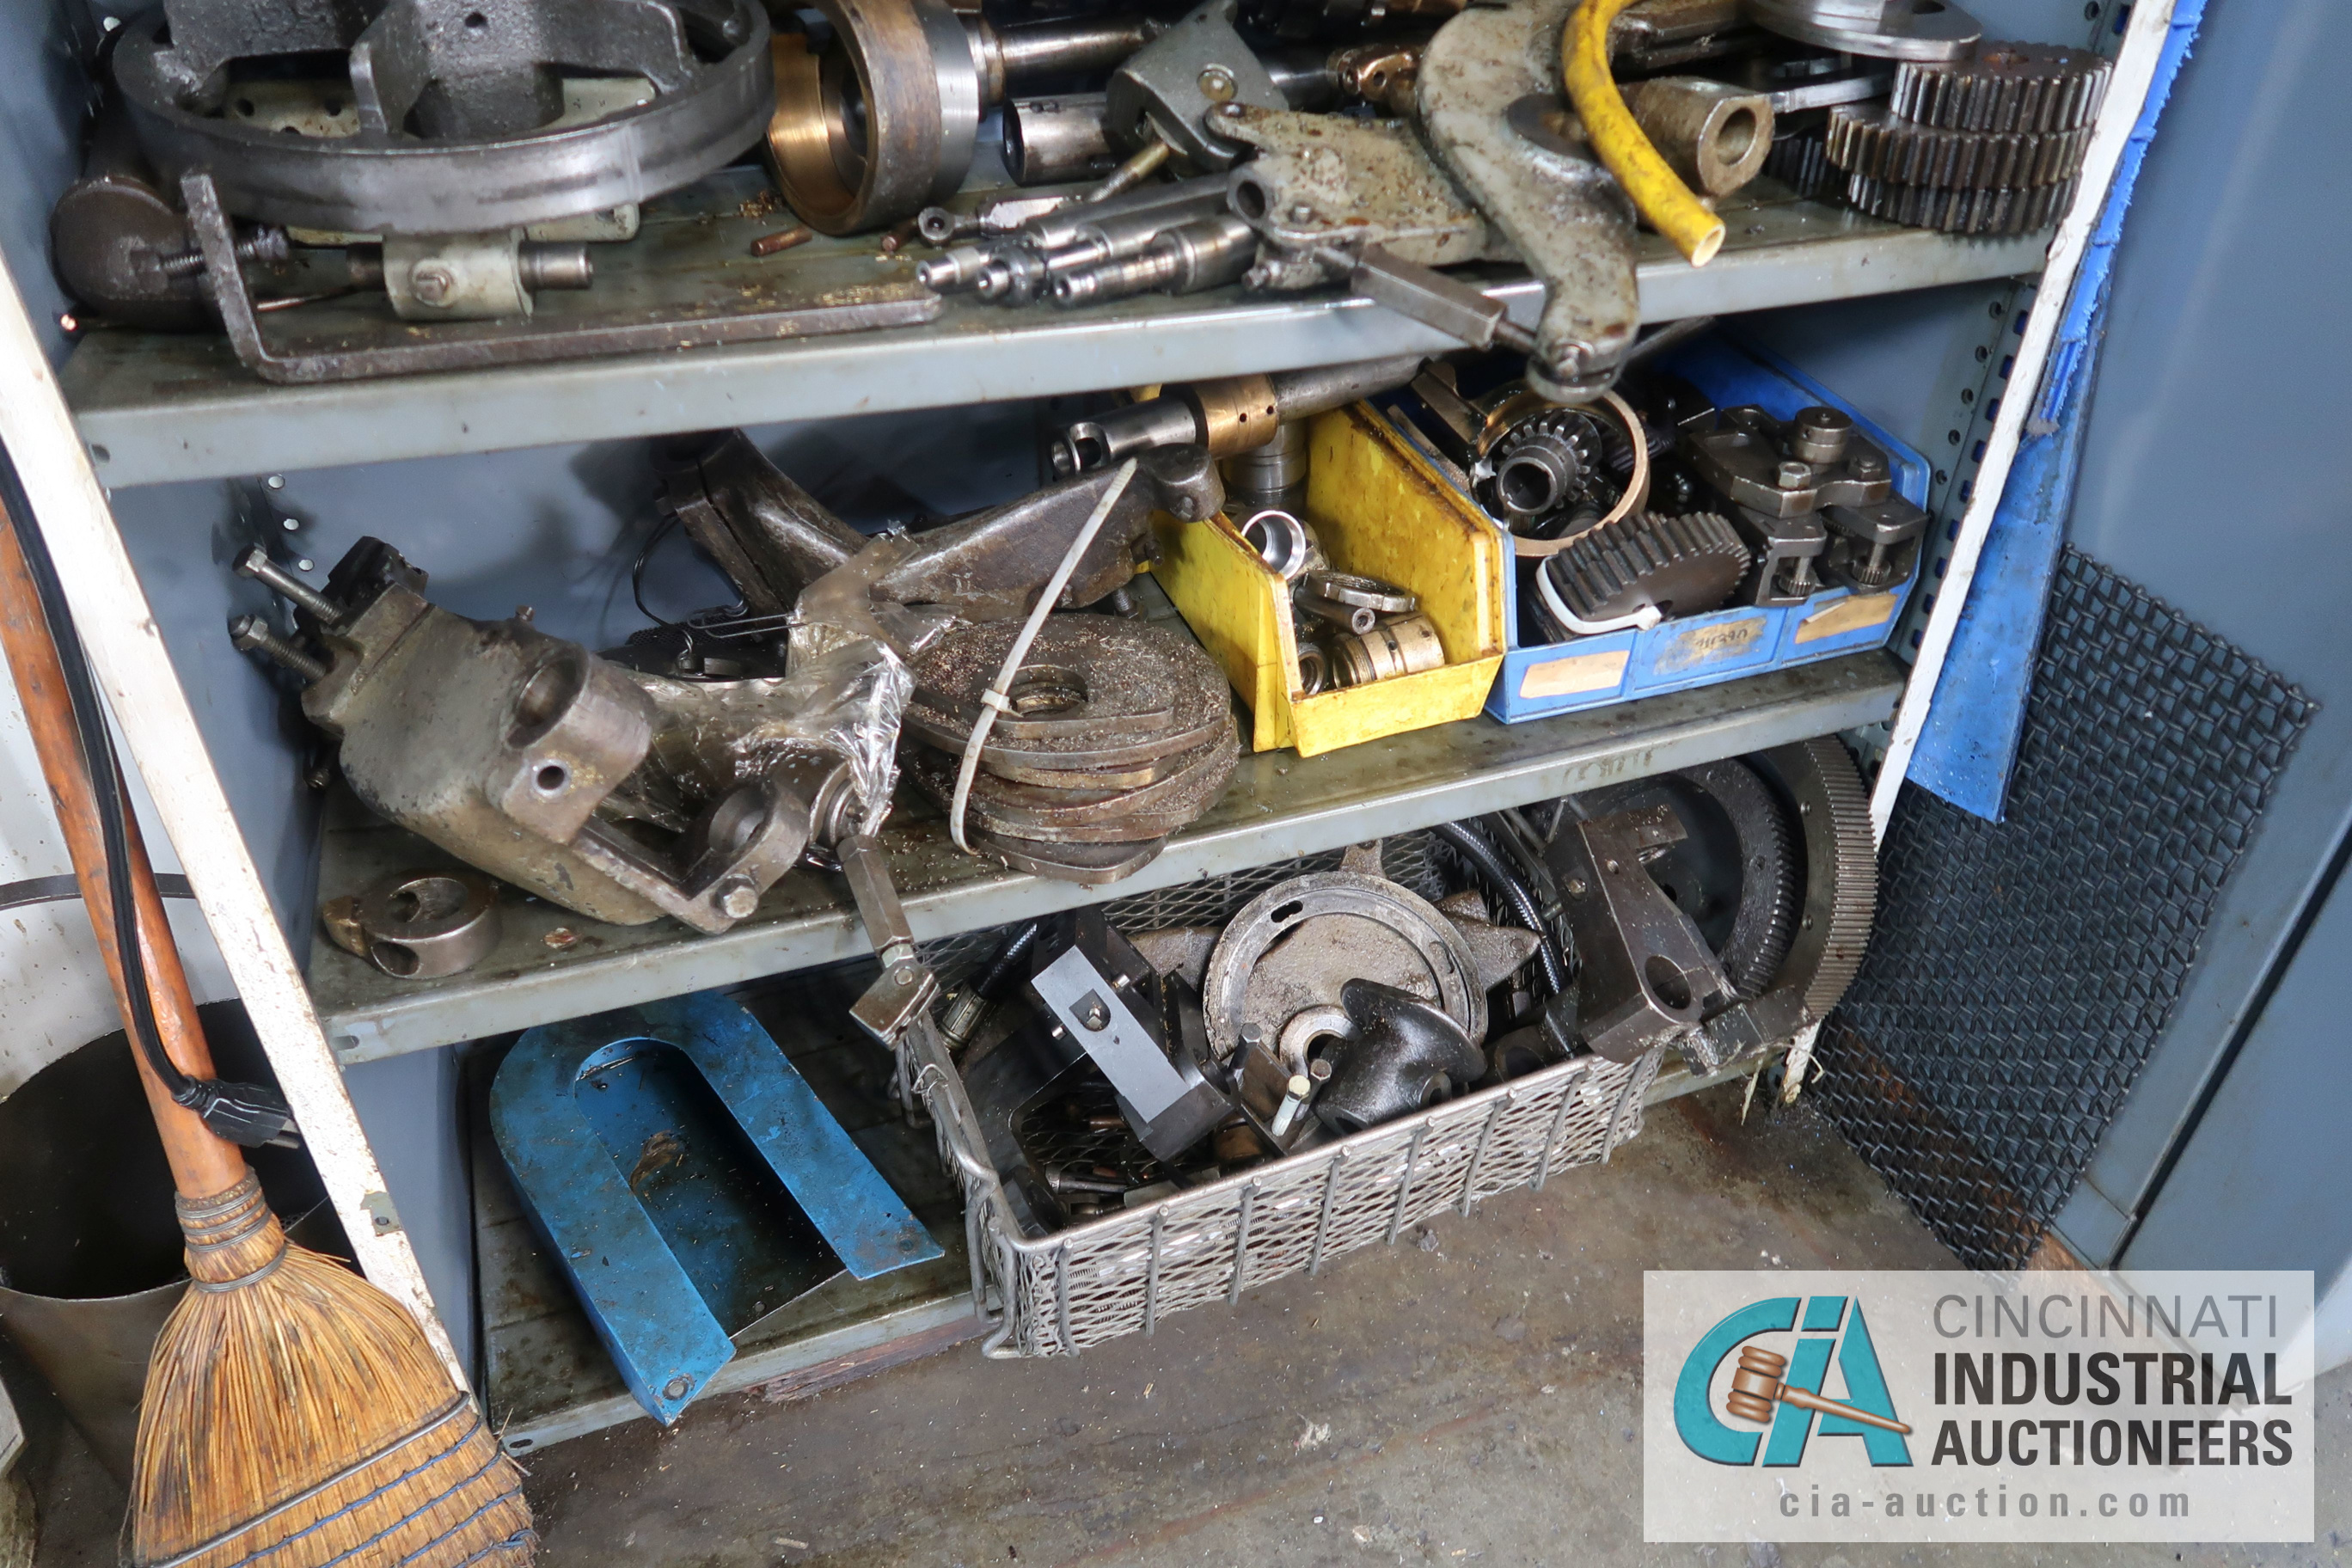 (LOT) LARGE ASSORTMENT MISCELLANEOUS DAVENPORT TOOLING, ATTACHMENTS, GEARS, CAMS AND OTHER RELATED - Image 15 of 21